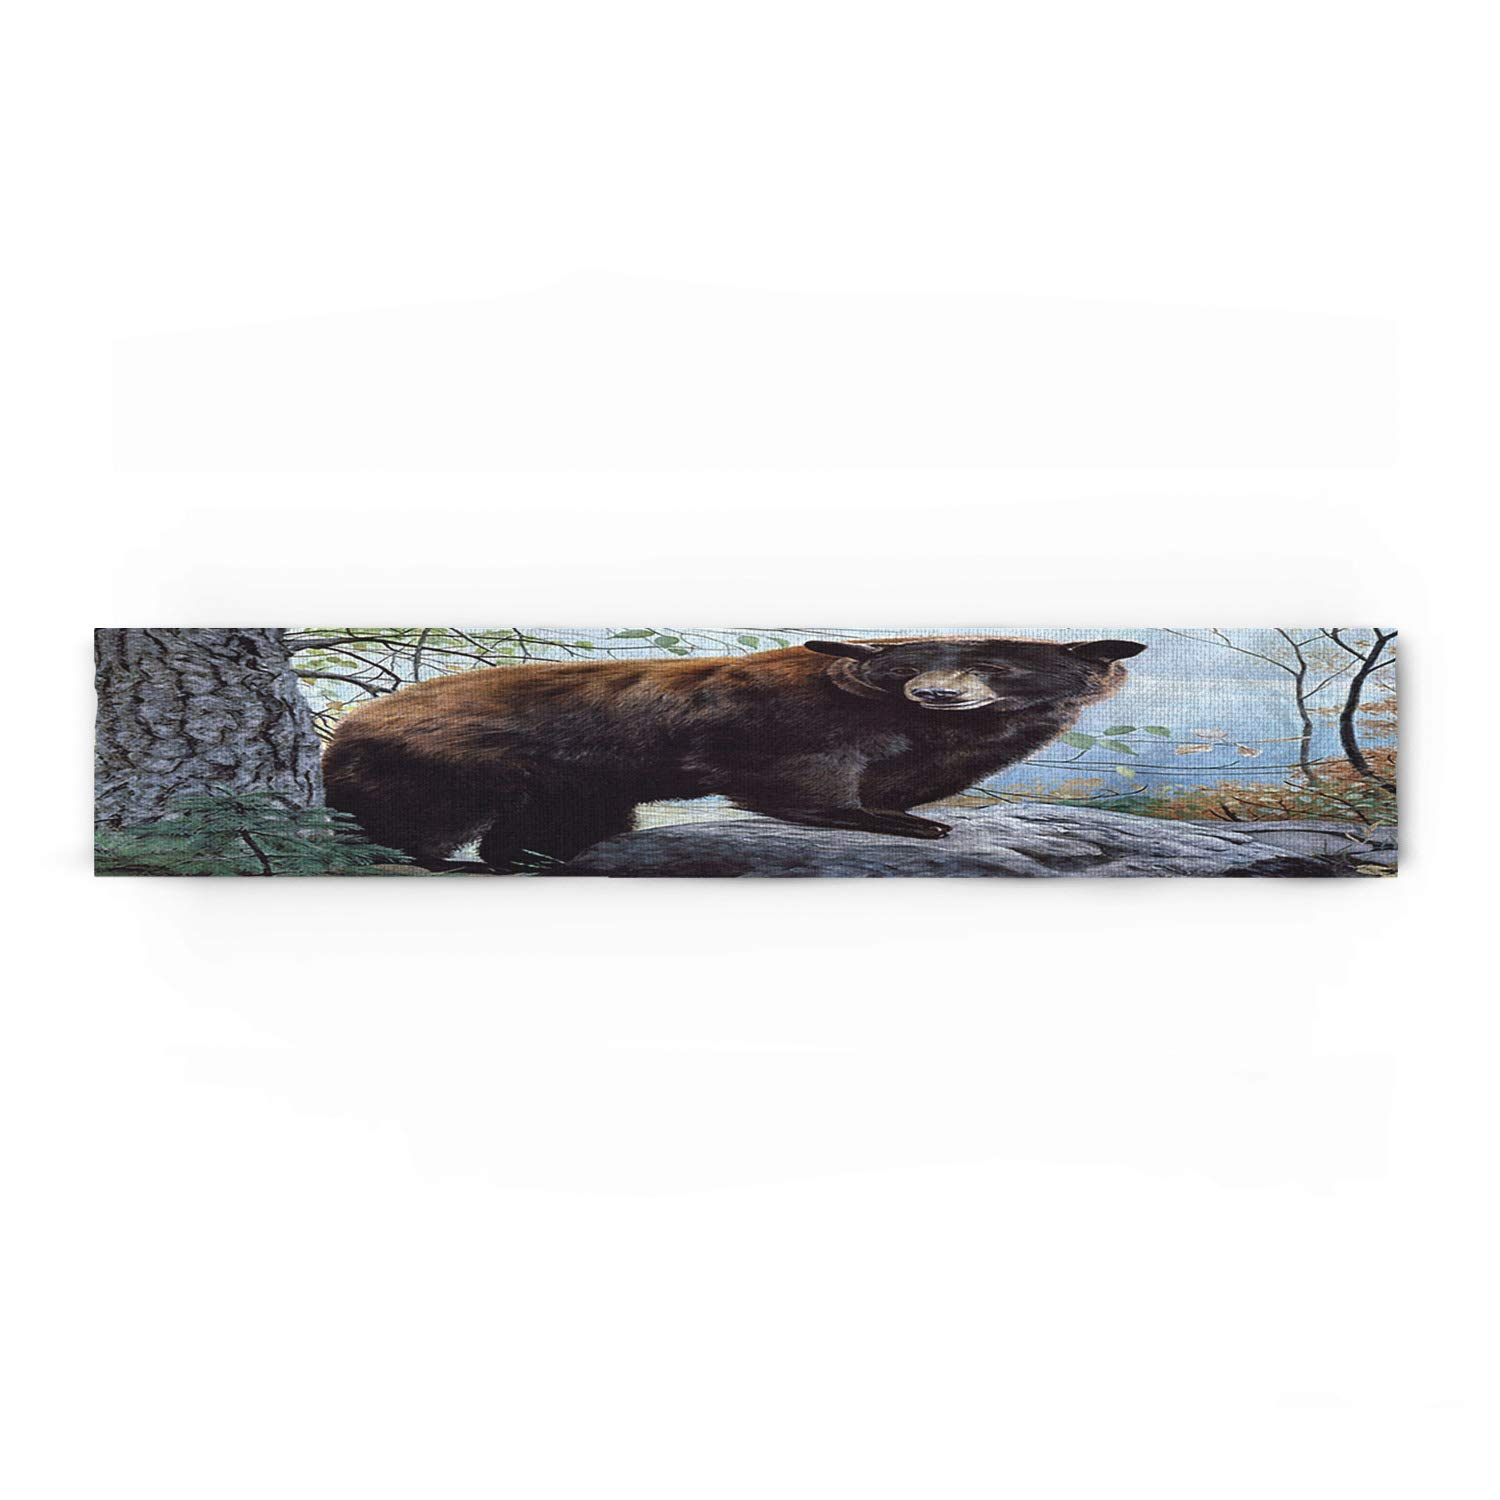 Decorfine The Bear in The Woods Cotton Table Runner - Perfect for Summer, Holiday Parties and Everyday Use 14x72inch